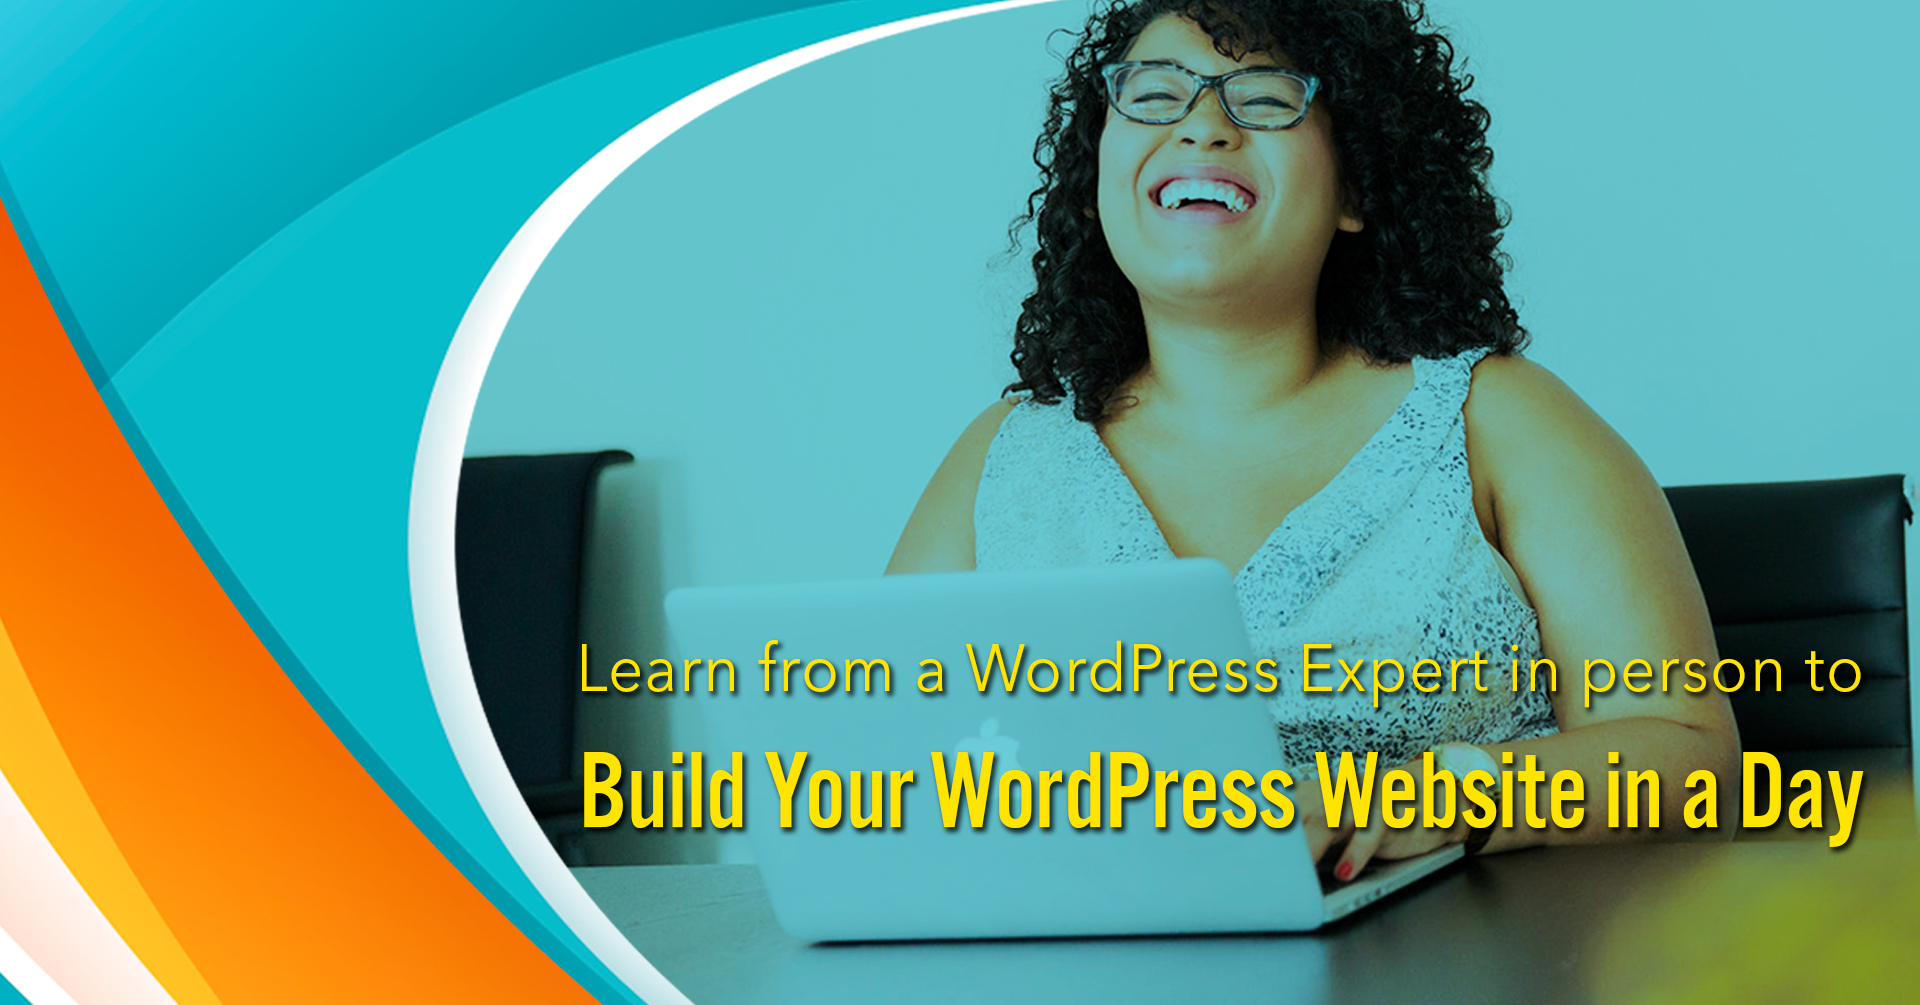 Learn from a WordPress Expert in person to Build Your WordPress Website in a Day